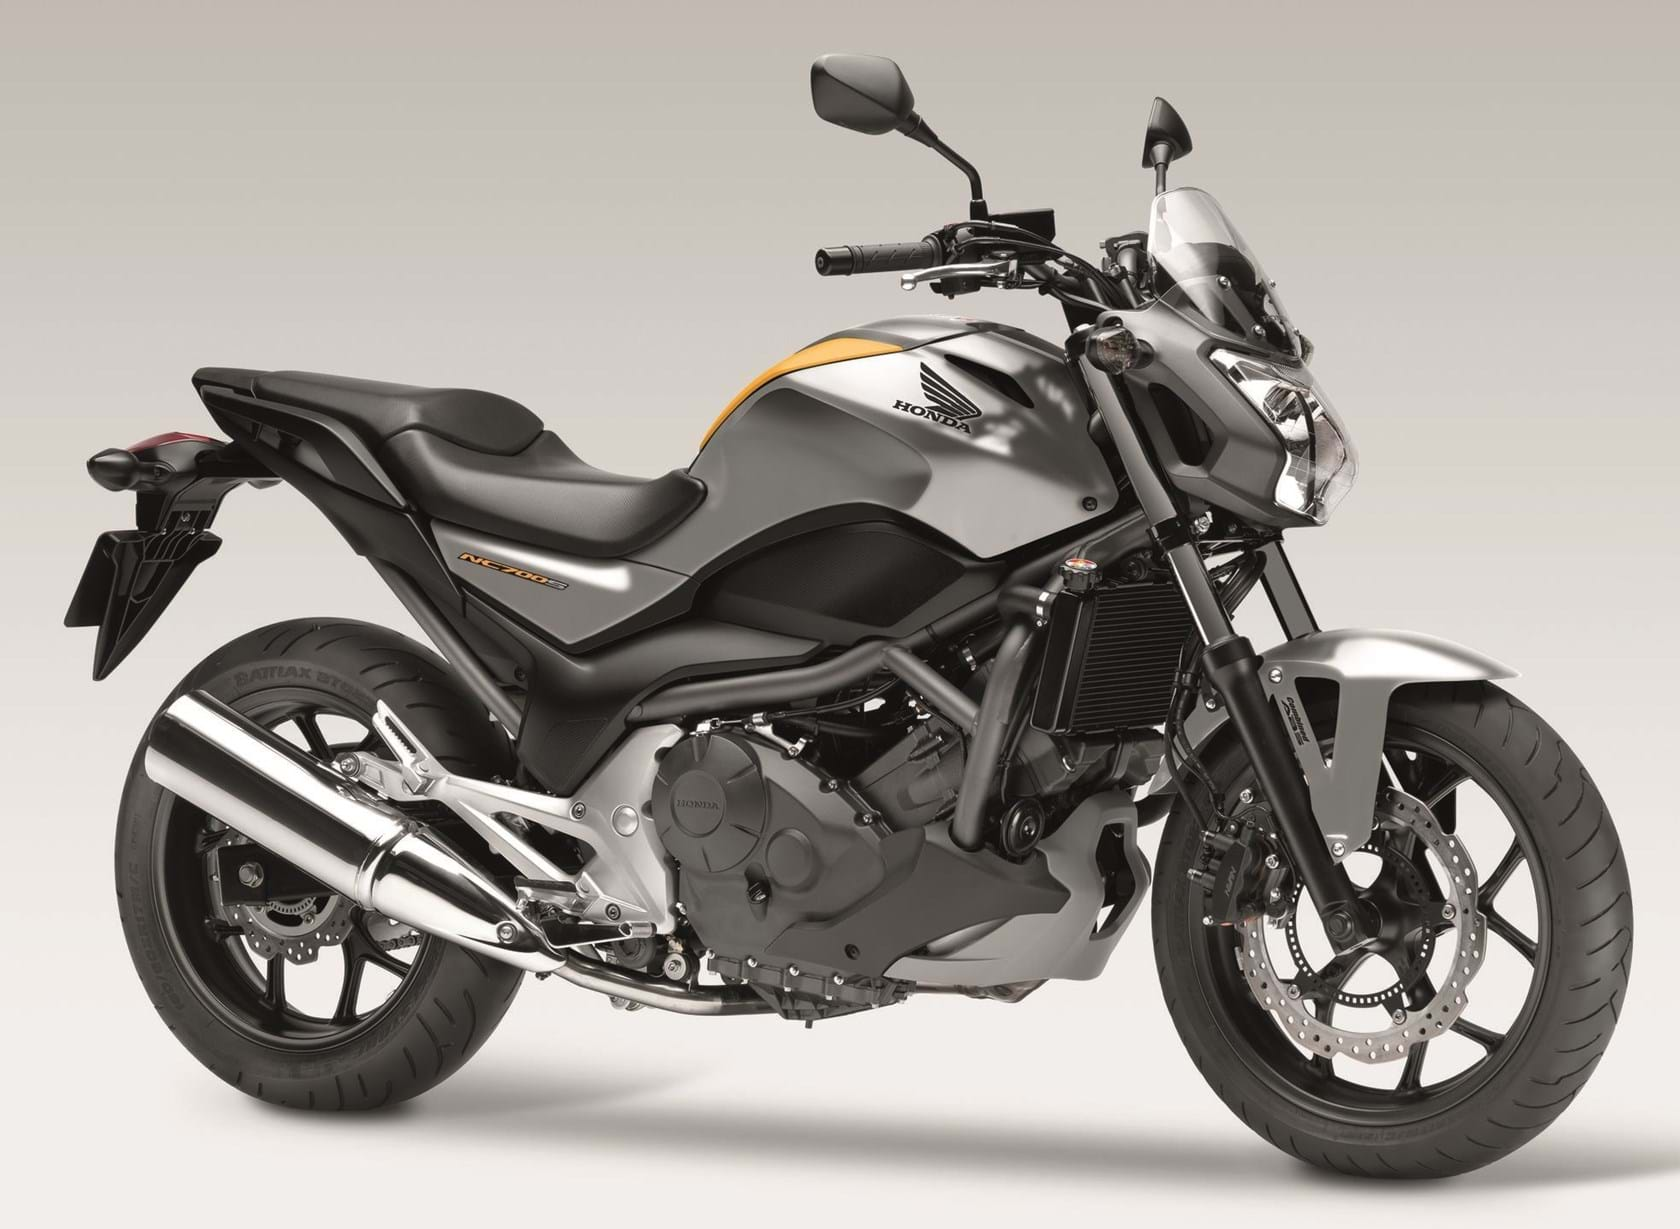 Honda NC700S • Review • For Sale • Price Guide • The Bike Market